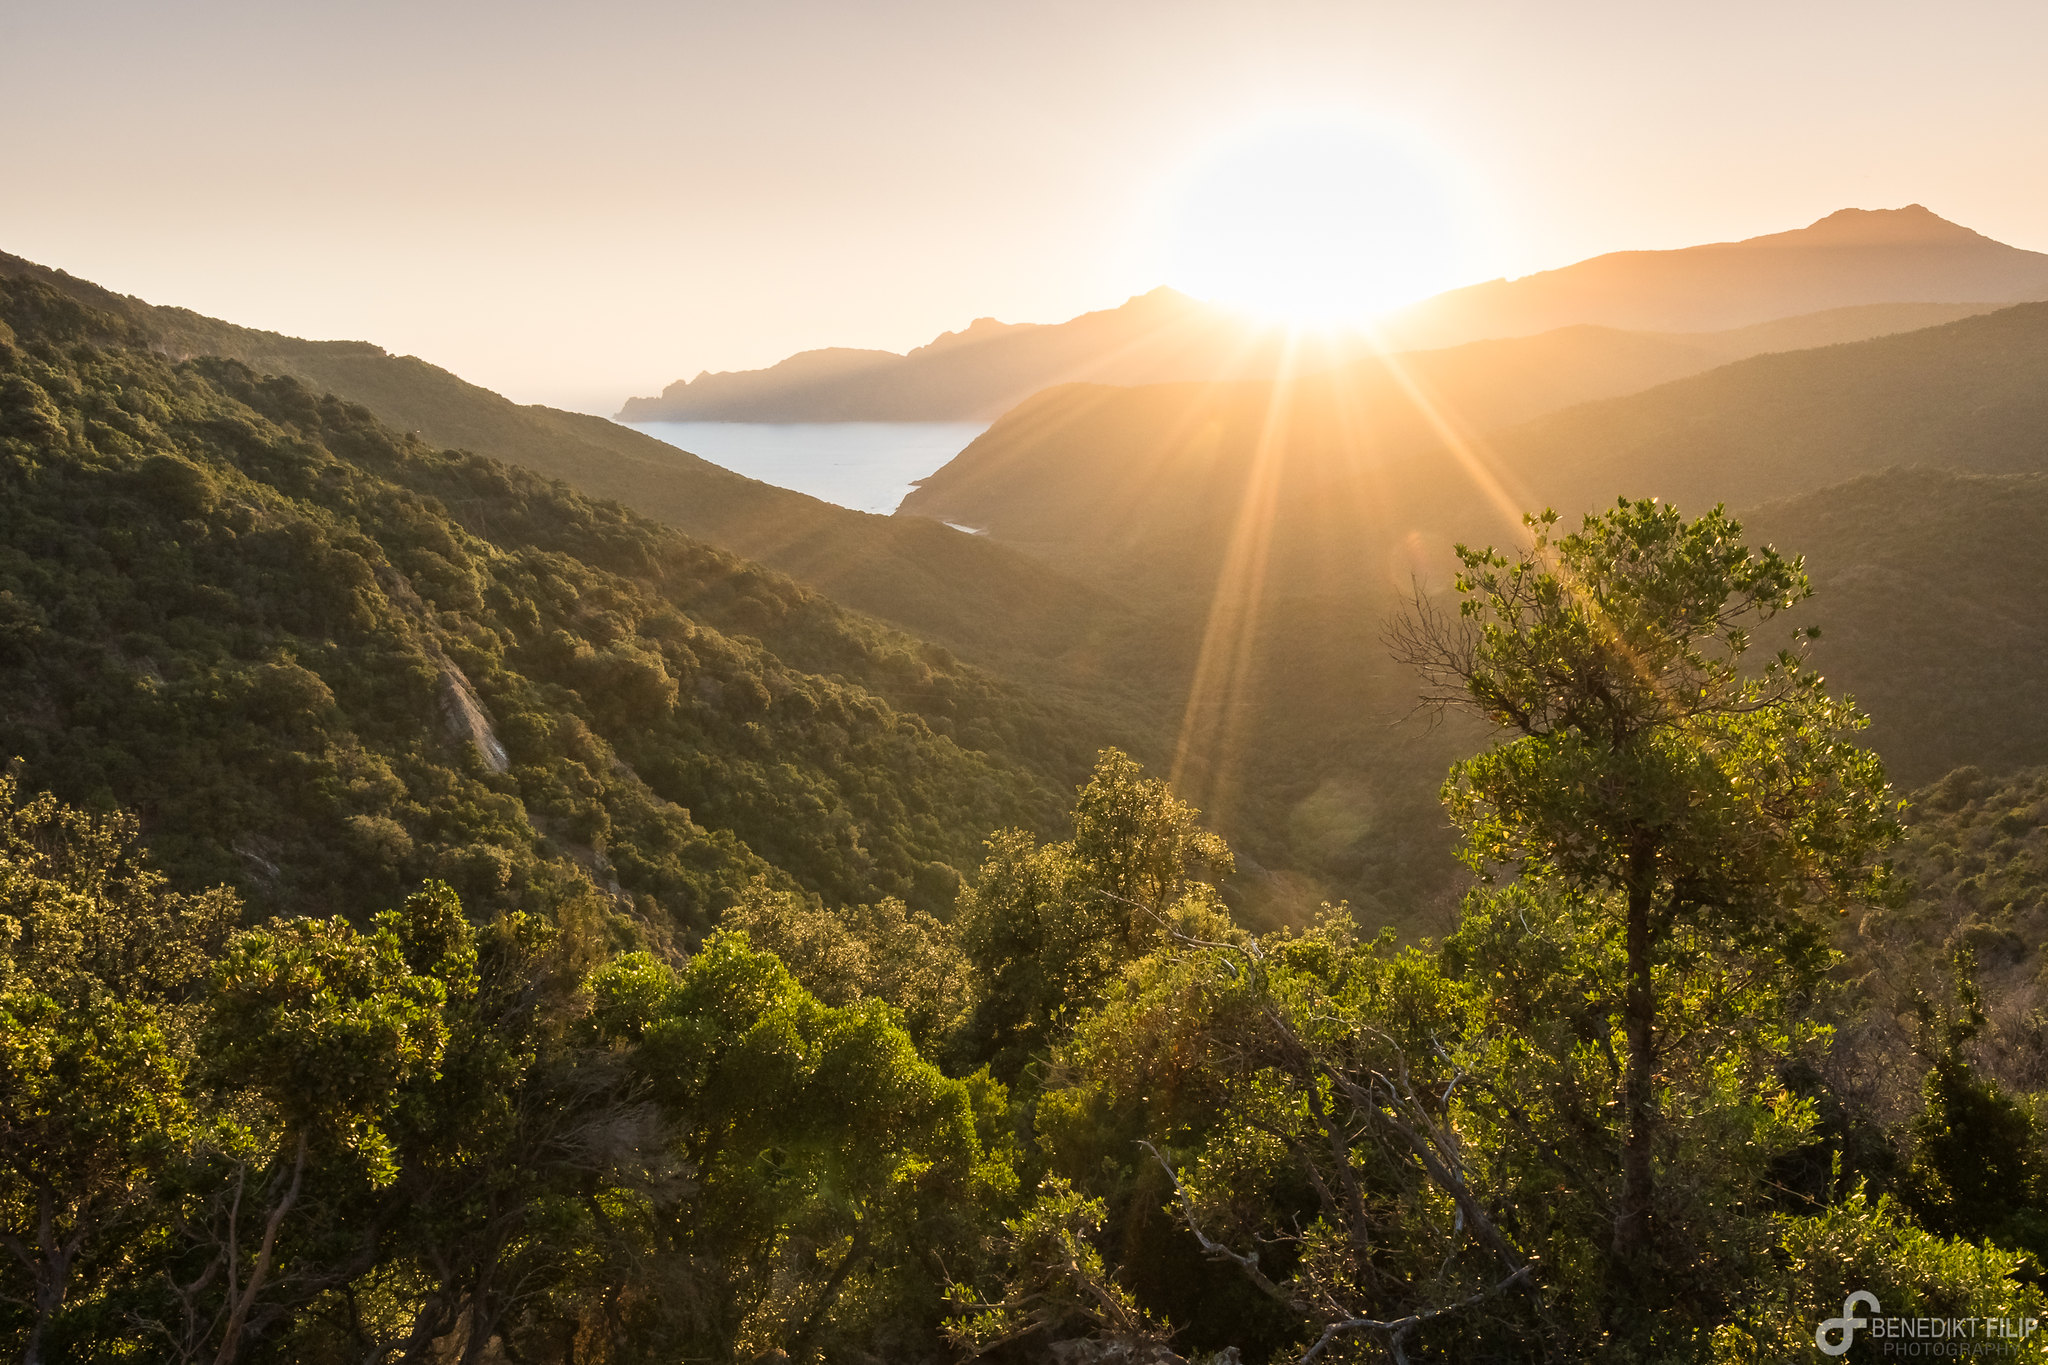 Sunset in the moutains of Corse